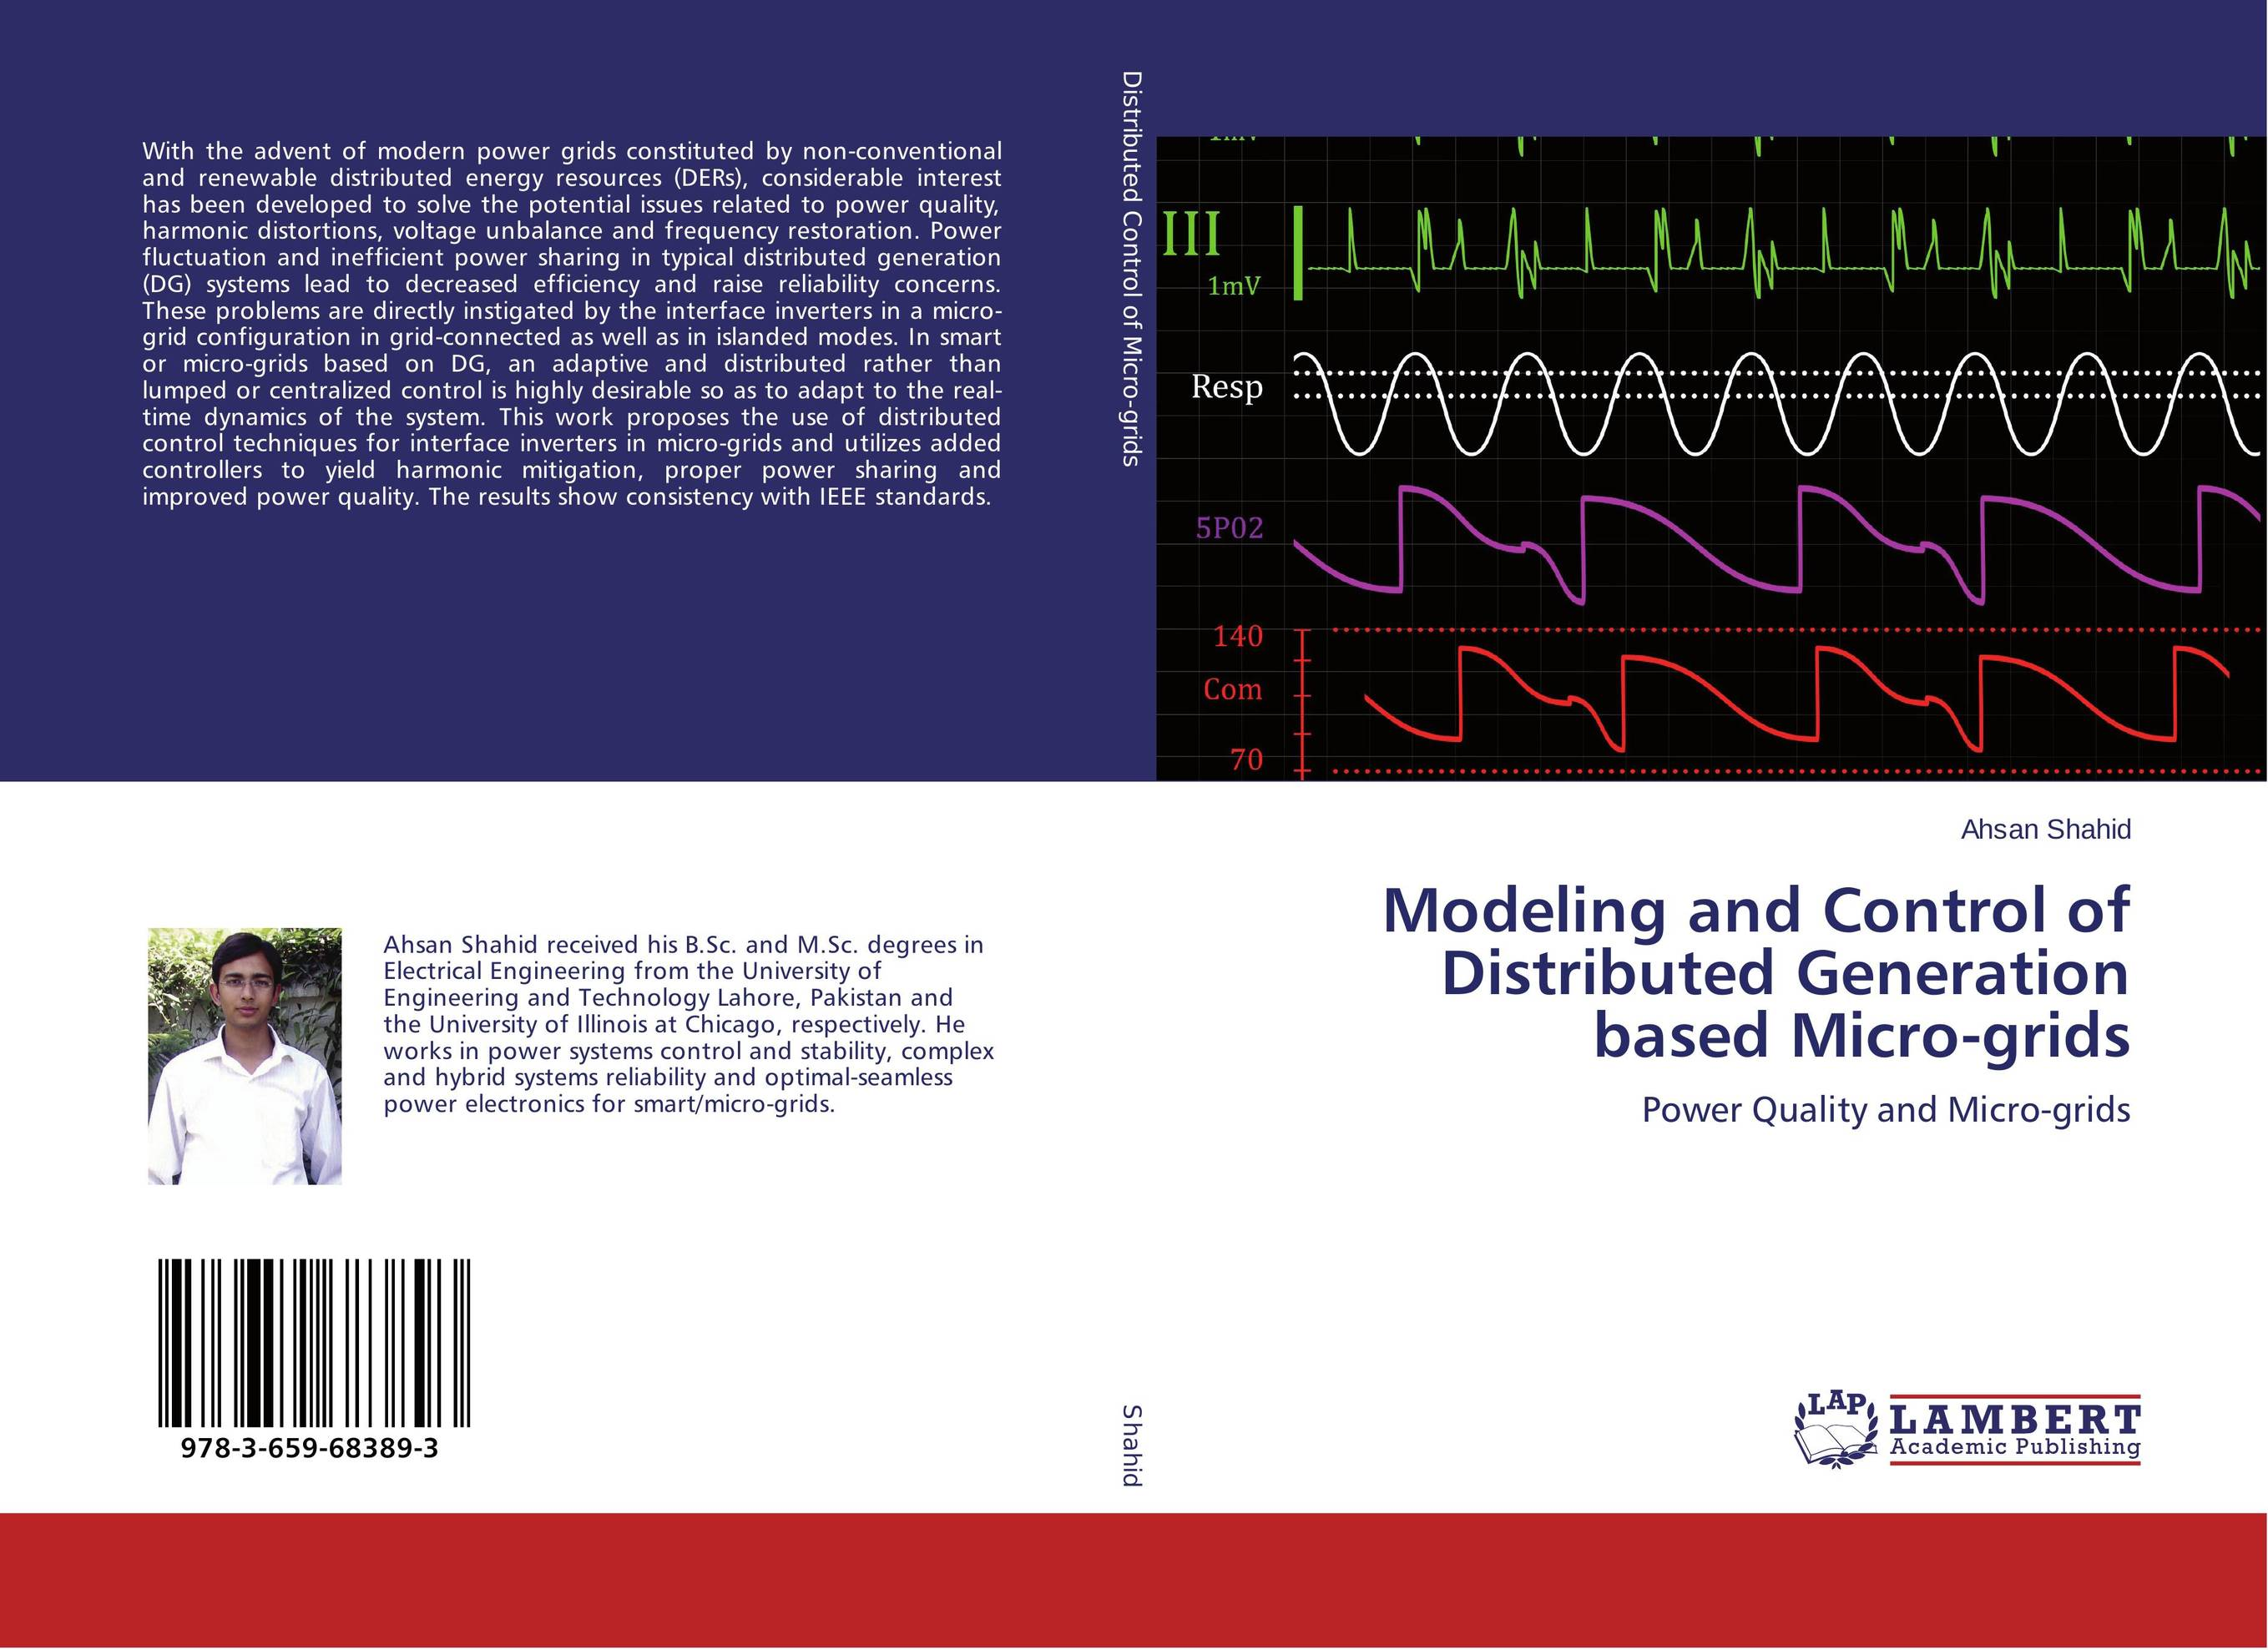 Modeling and Control of Distributed Generation based Micro-grids modeling and control of distributed generation based micro grids